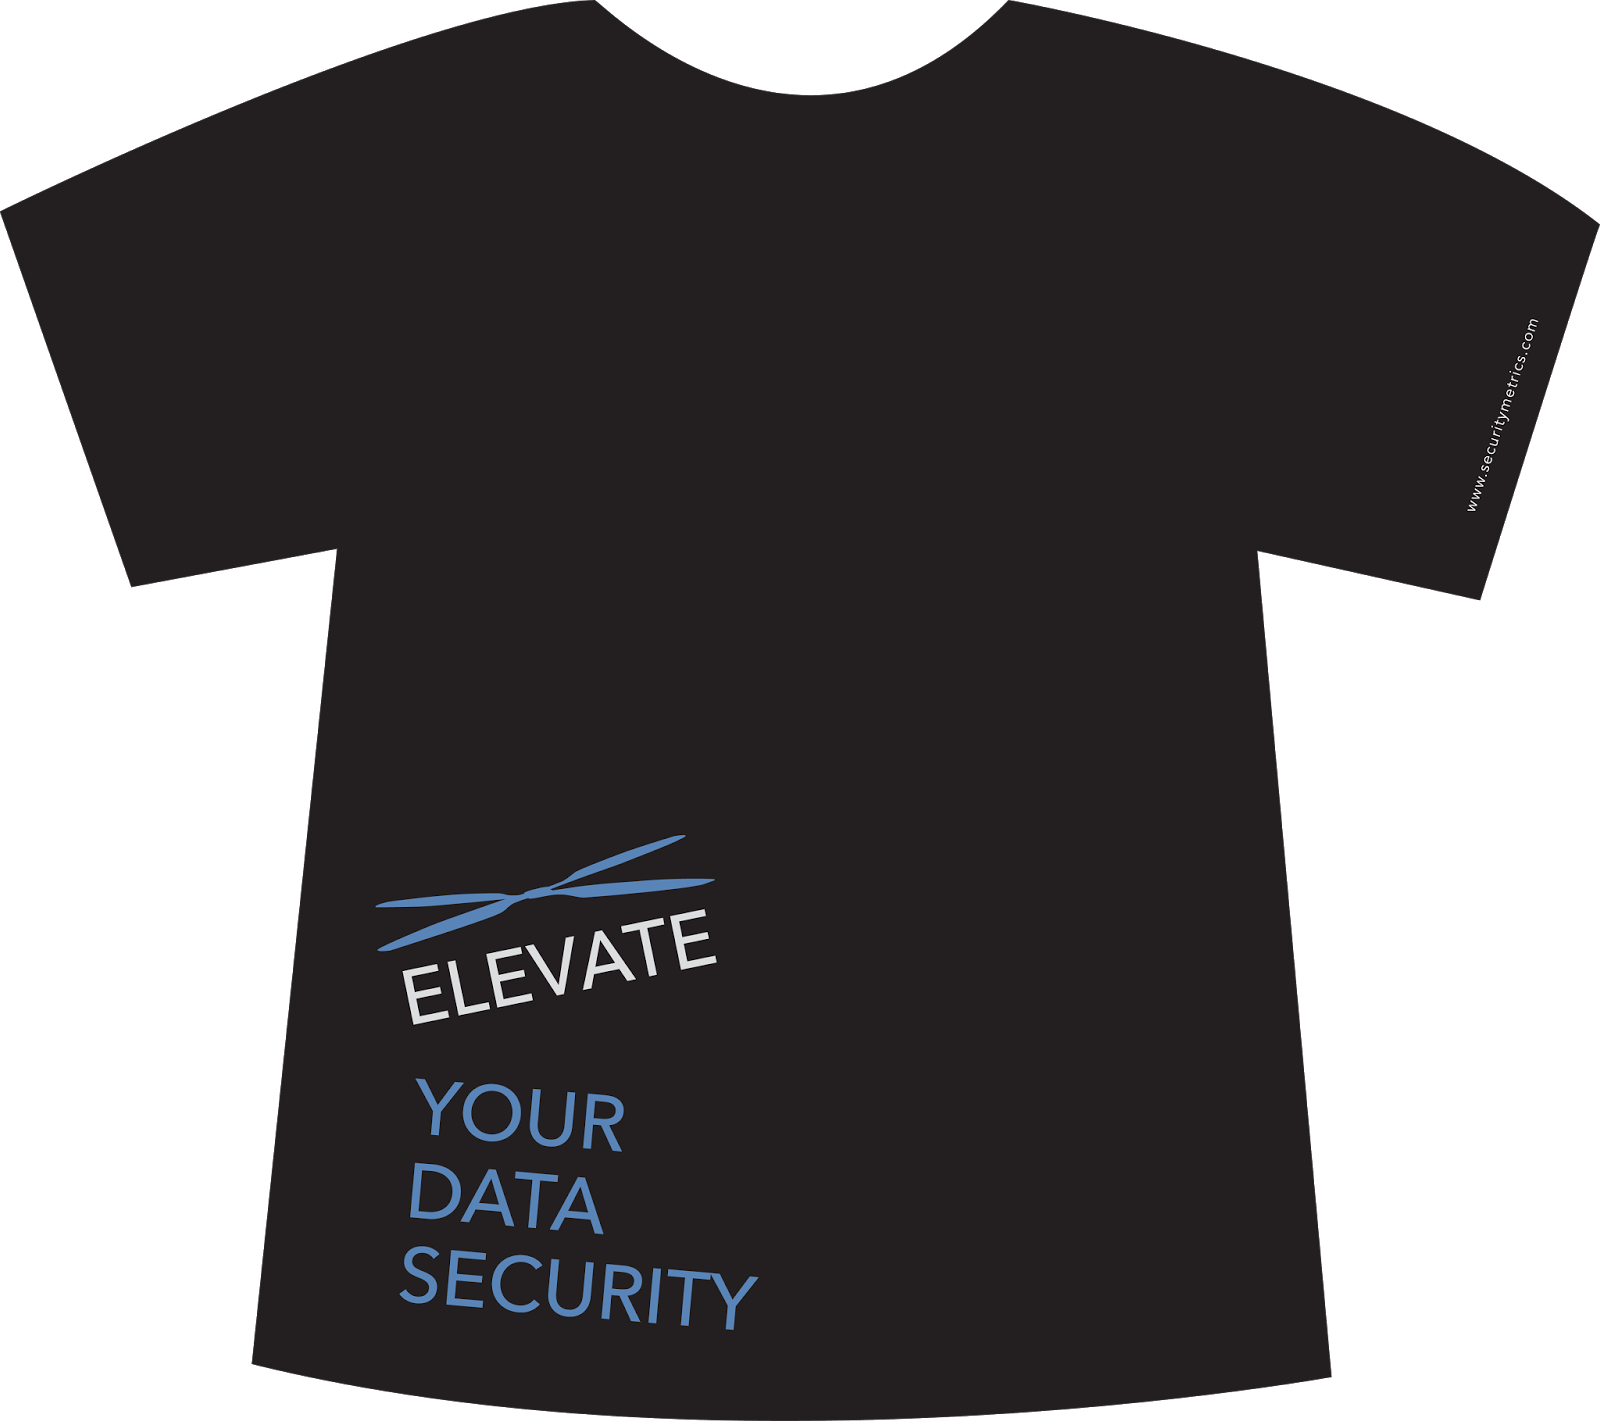 Elevate your data security at TRANSACT15